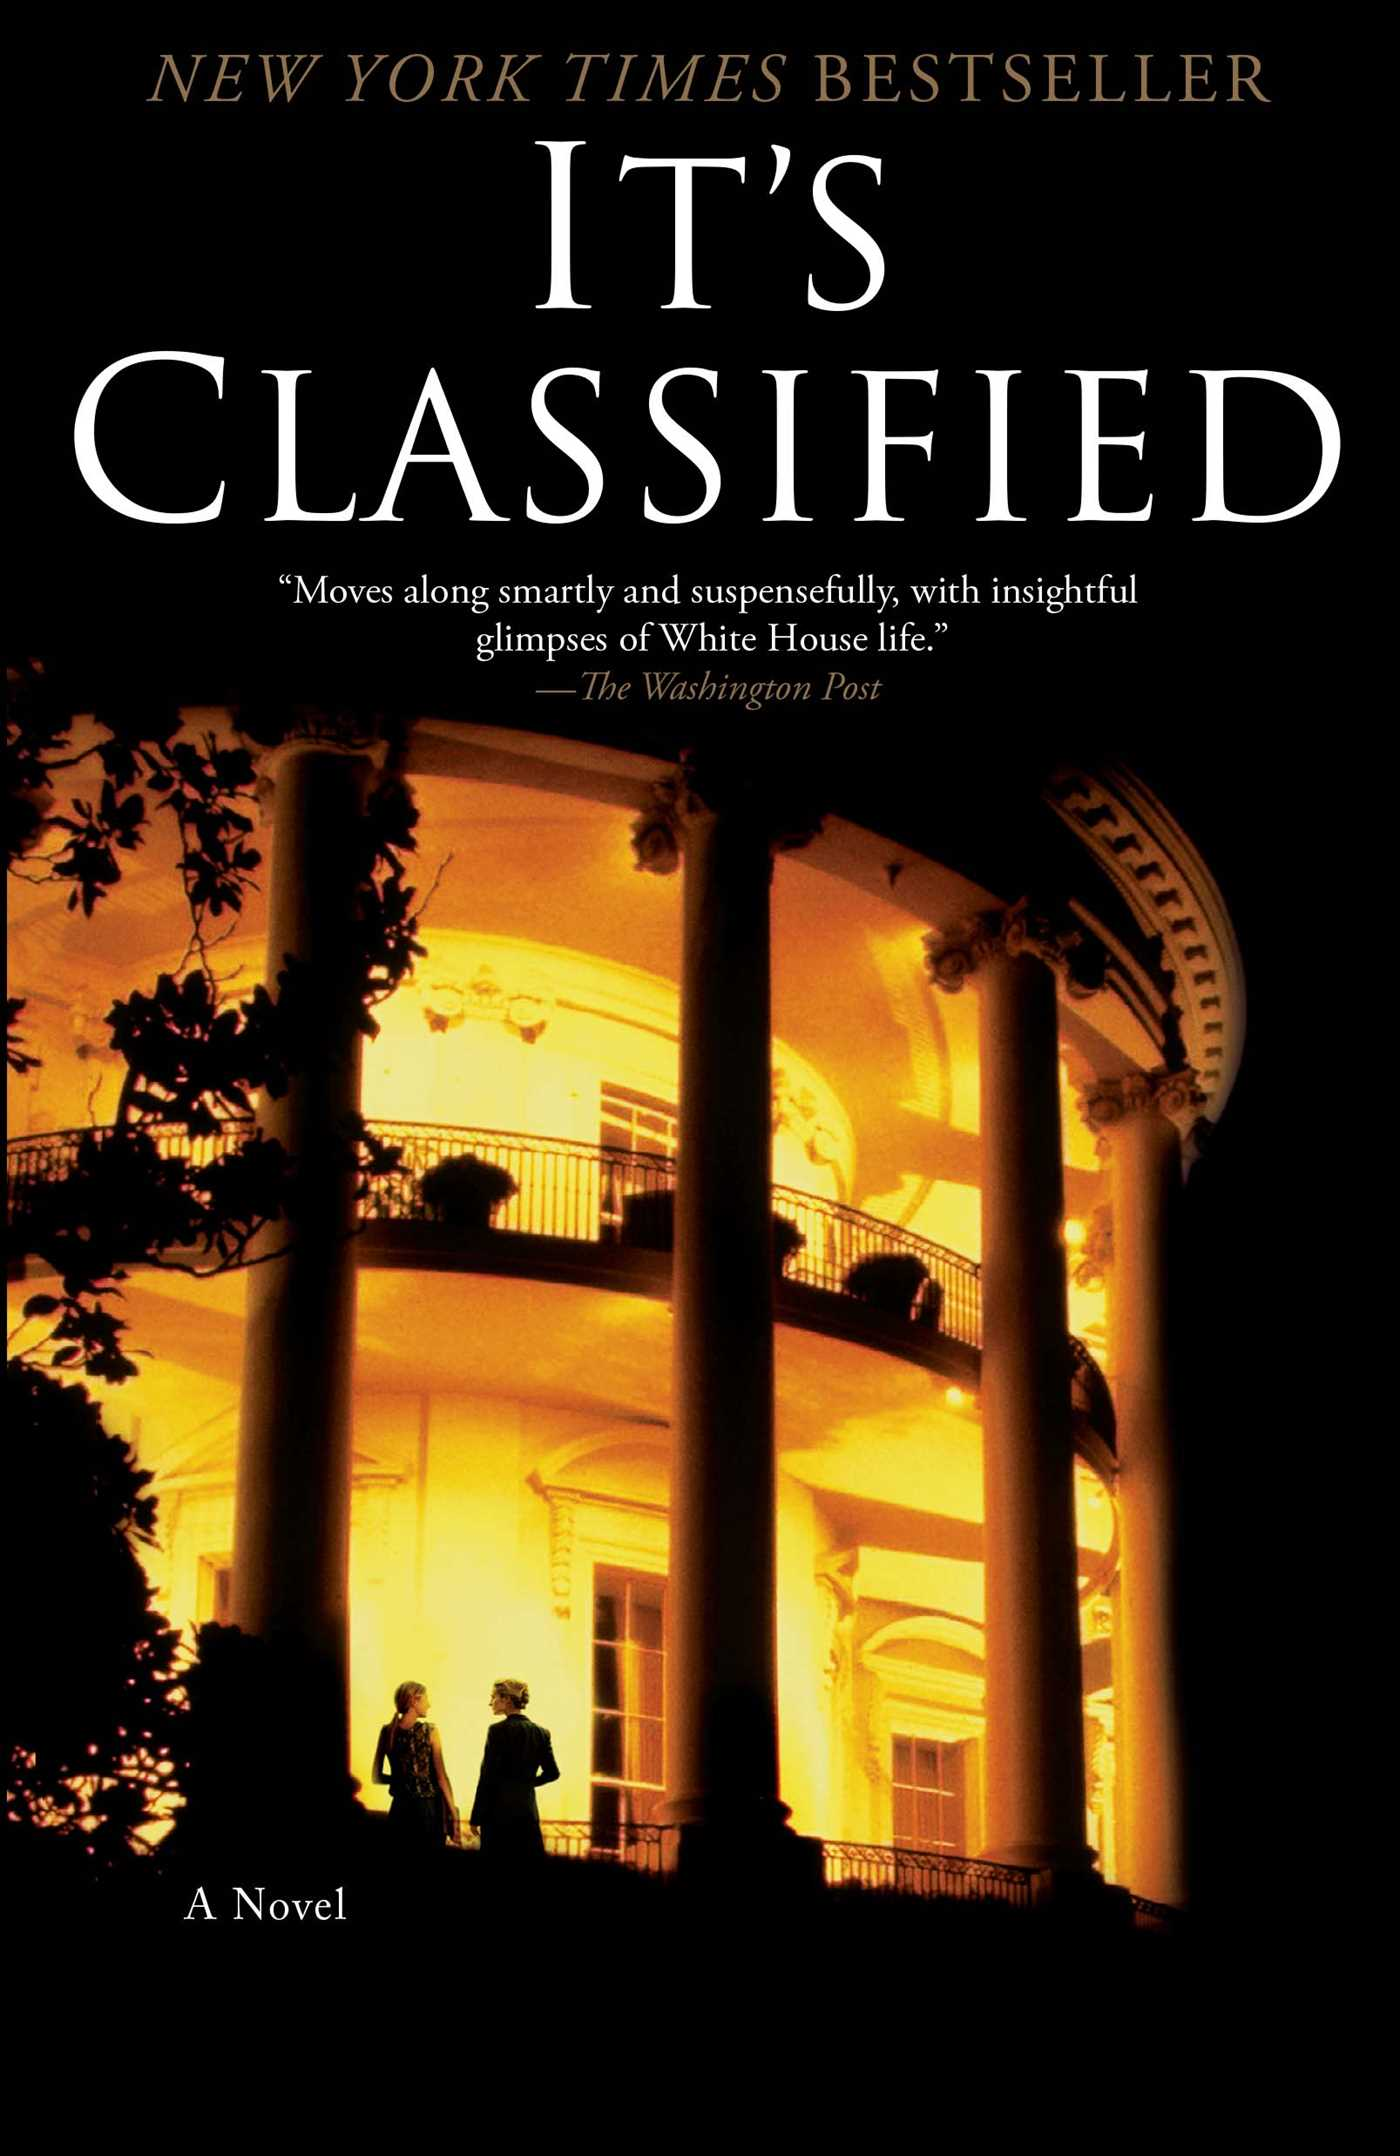 Its-classified-9781451610970_hr